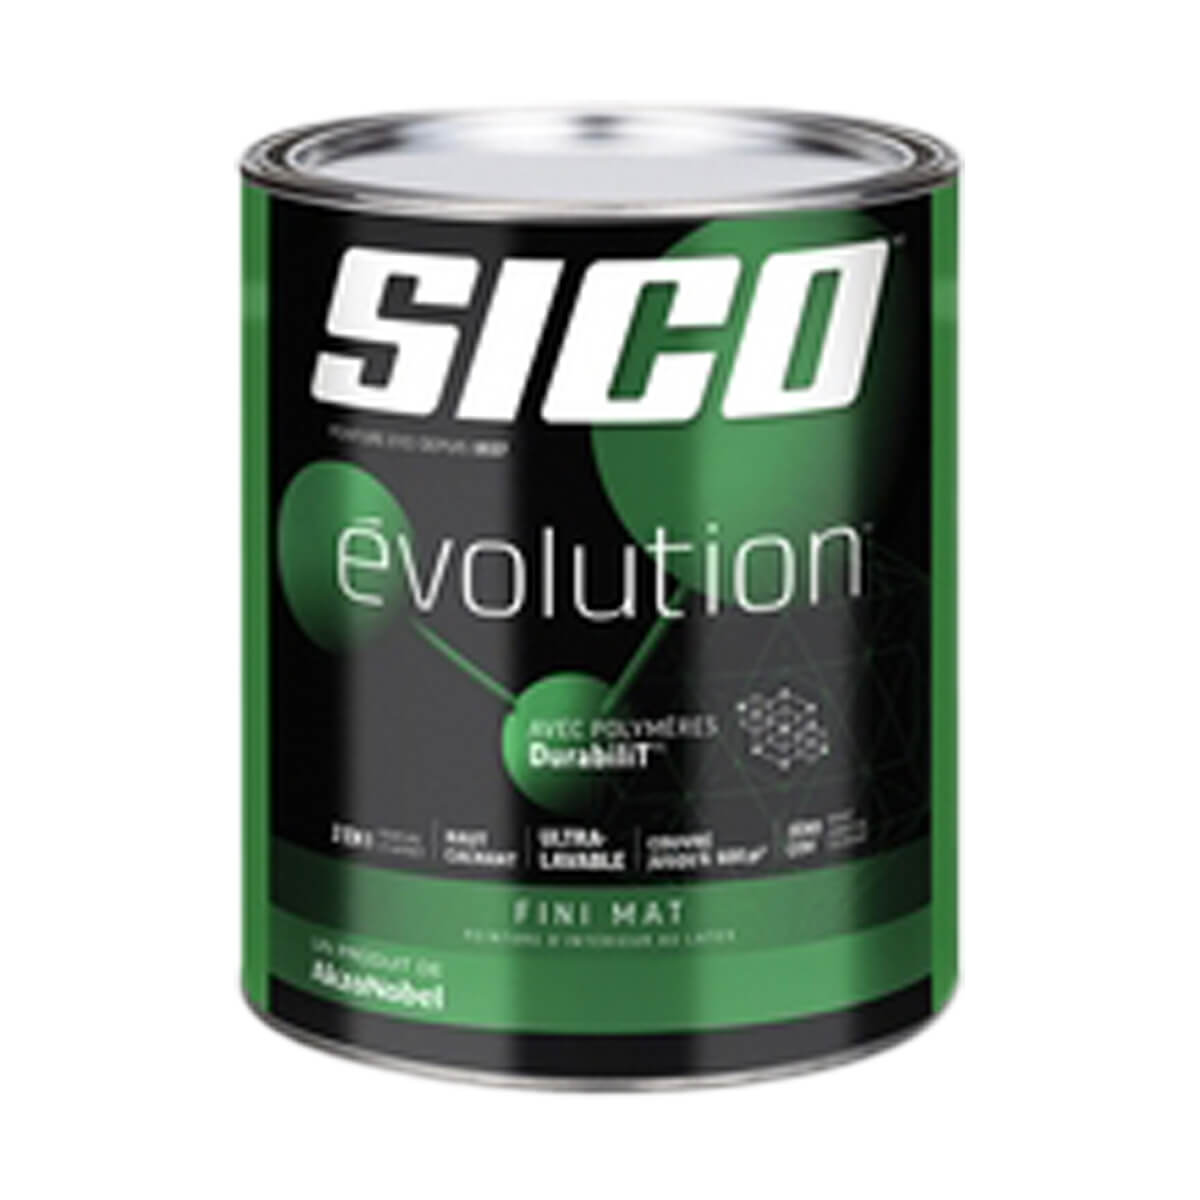 Sico Evolution Interior Latex Paint for Flat Ceilings Series 861